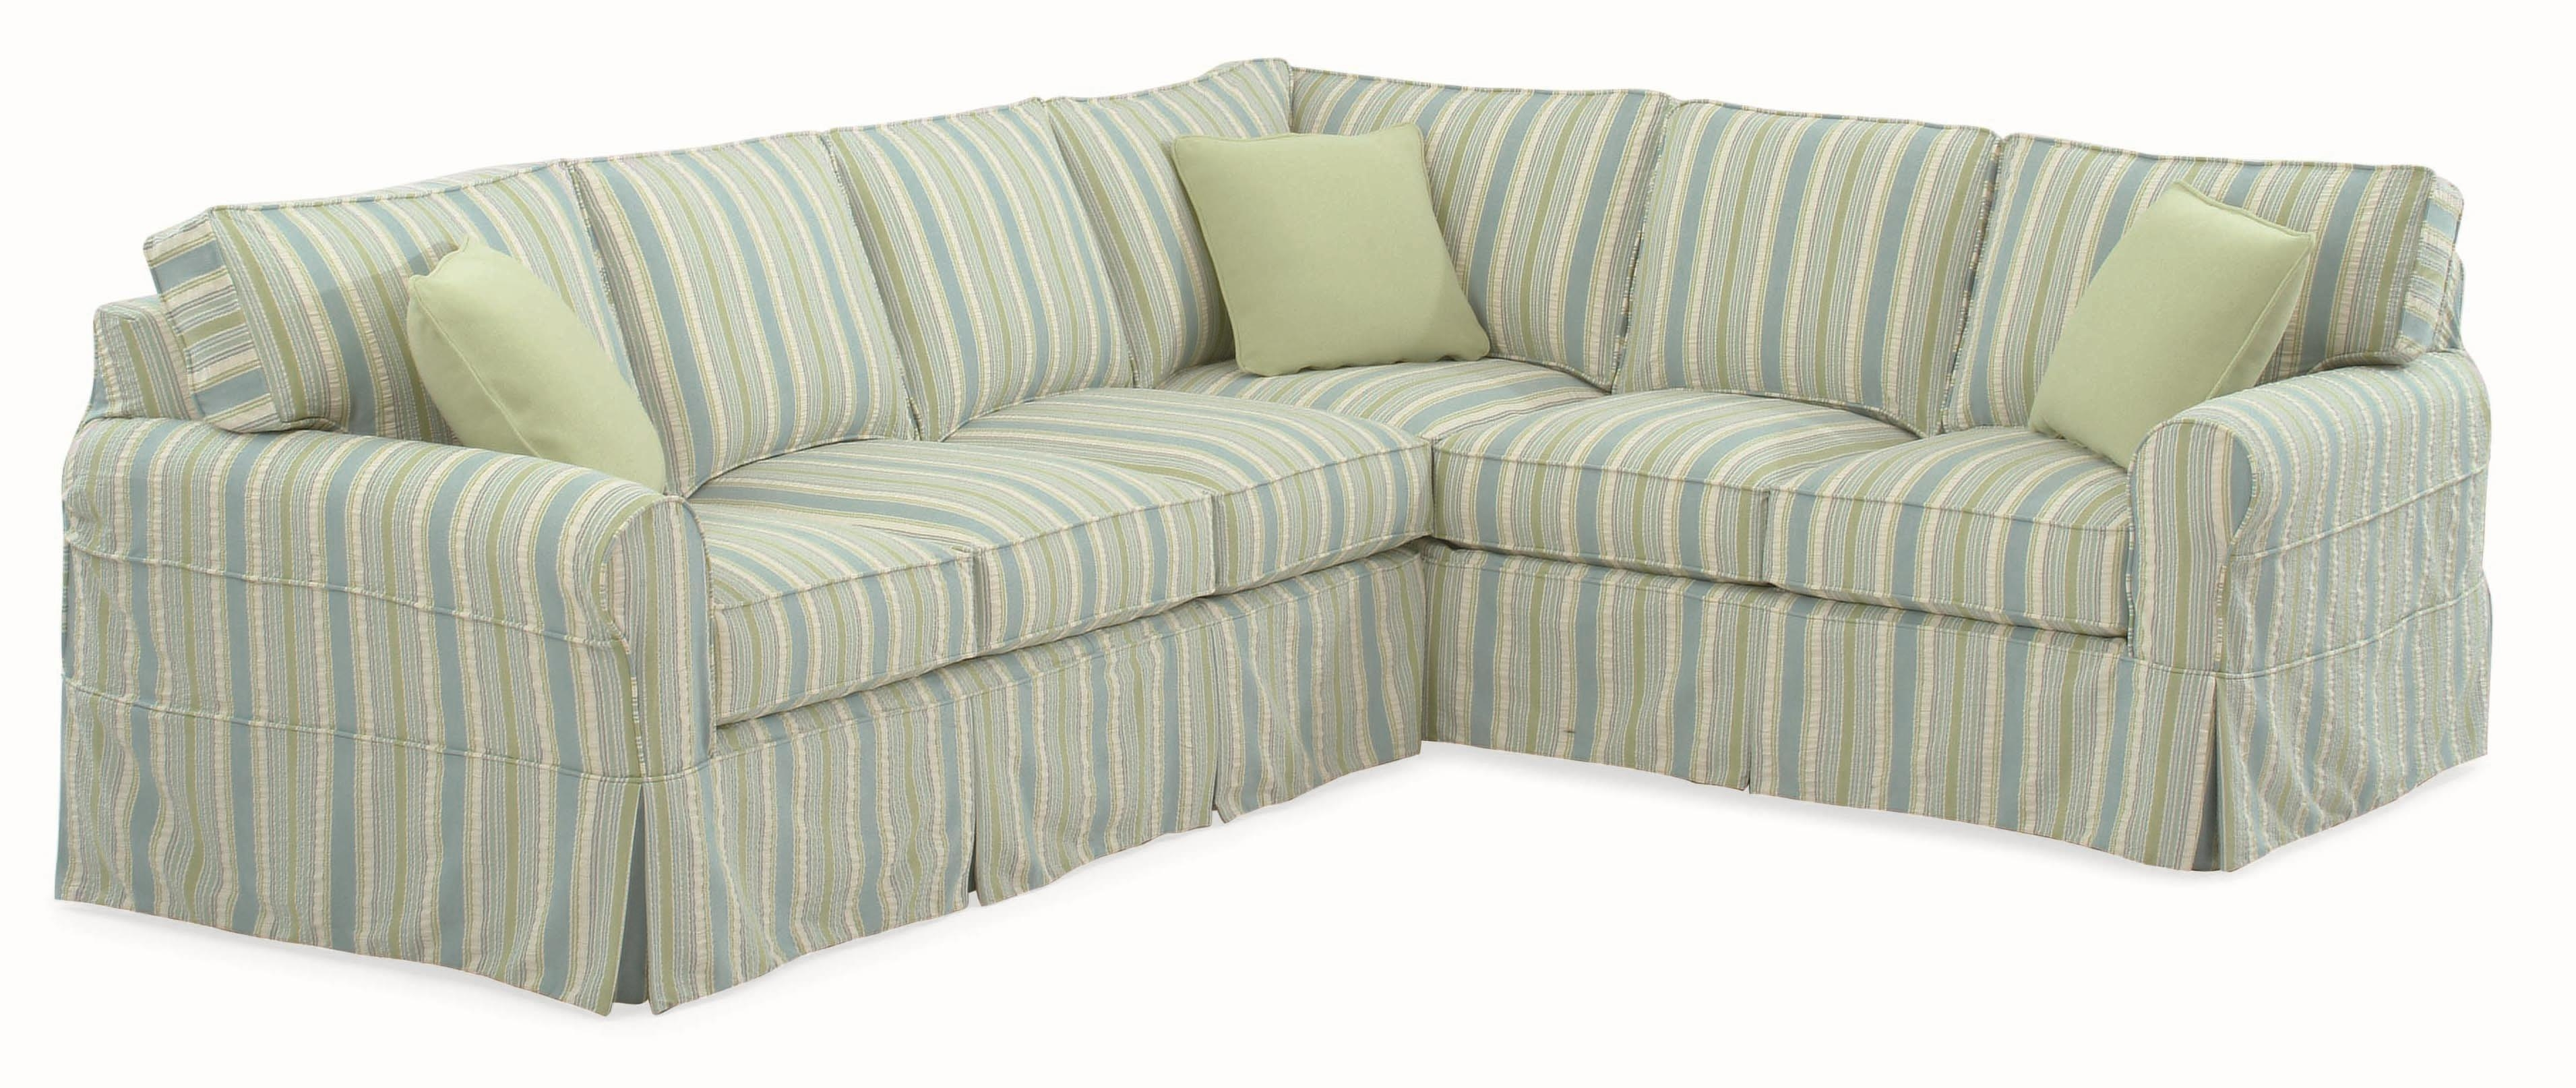 Braxton Culler 728 Casual Sectional Sofa With Rolled Arms And With Braxton Sofa (Image 1 of 20)